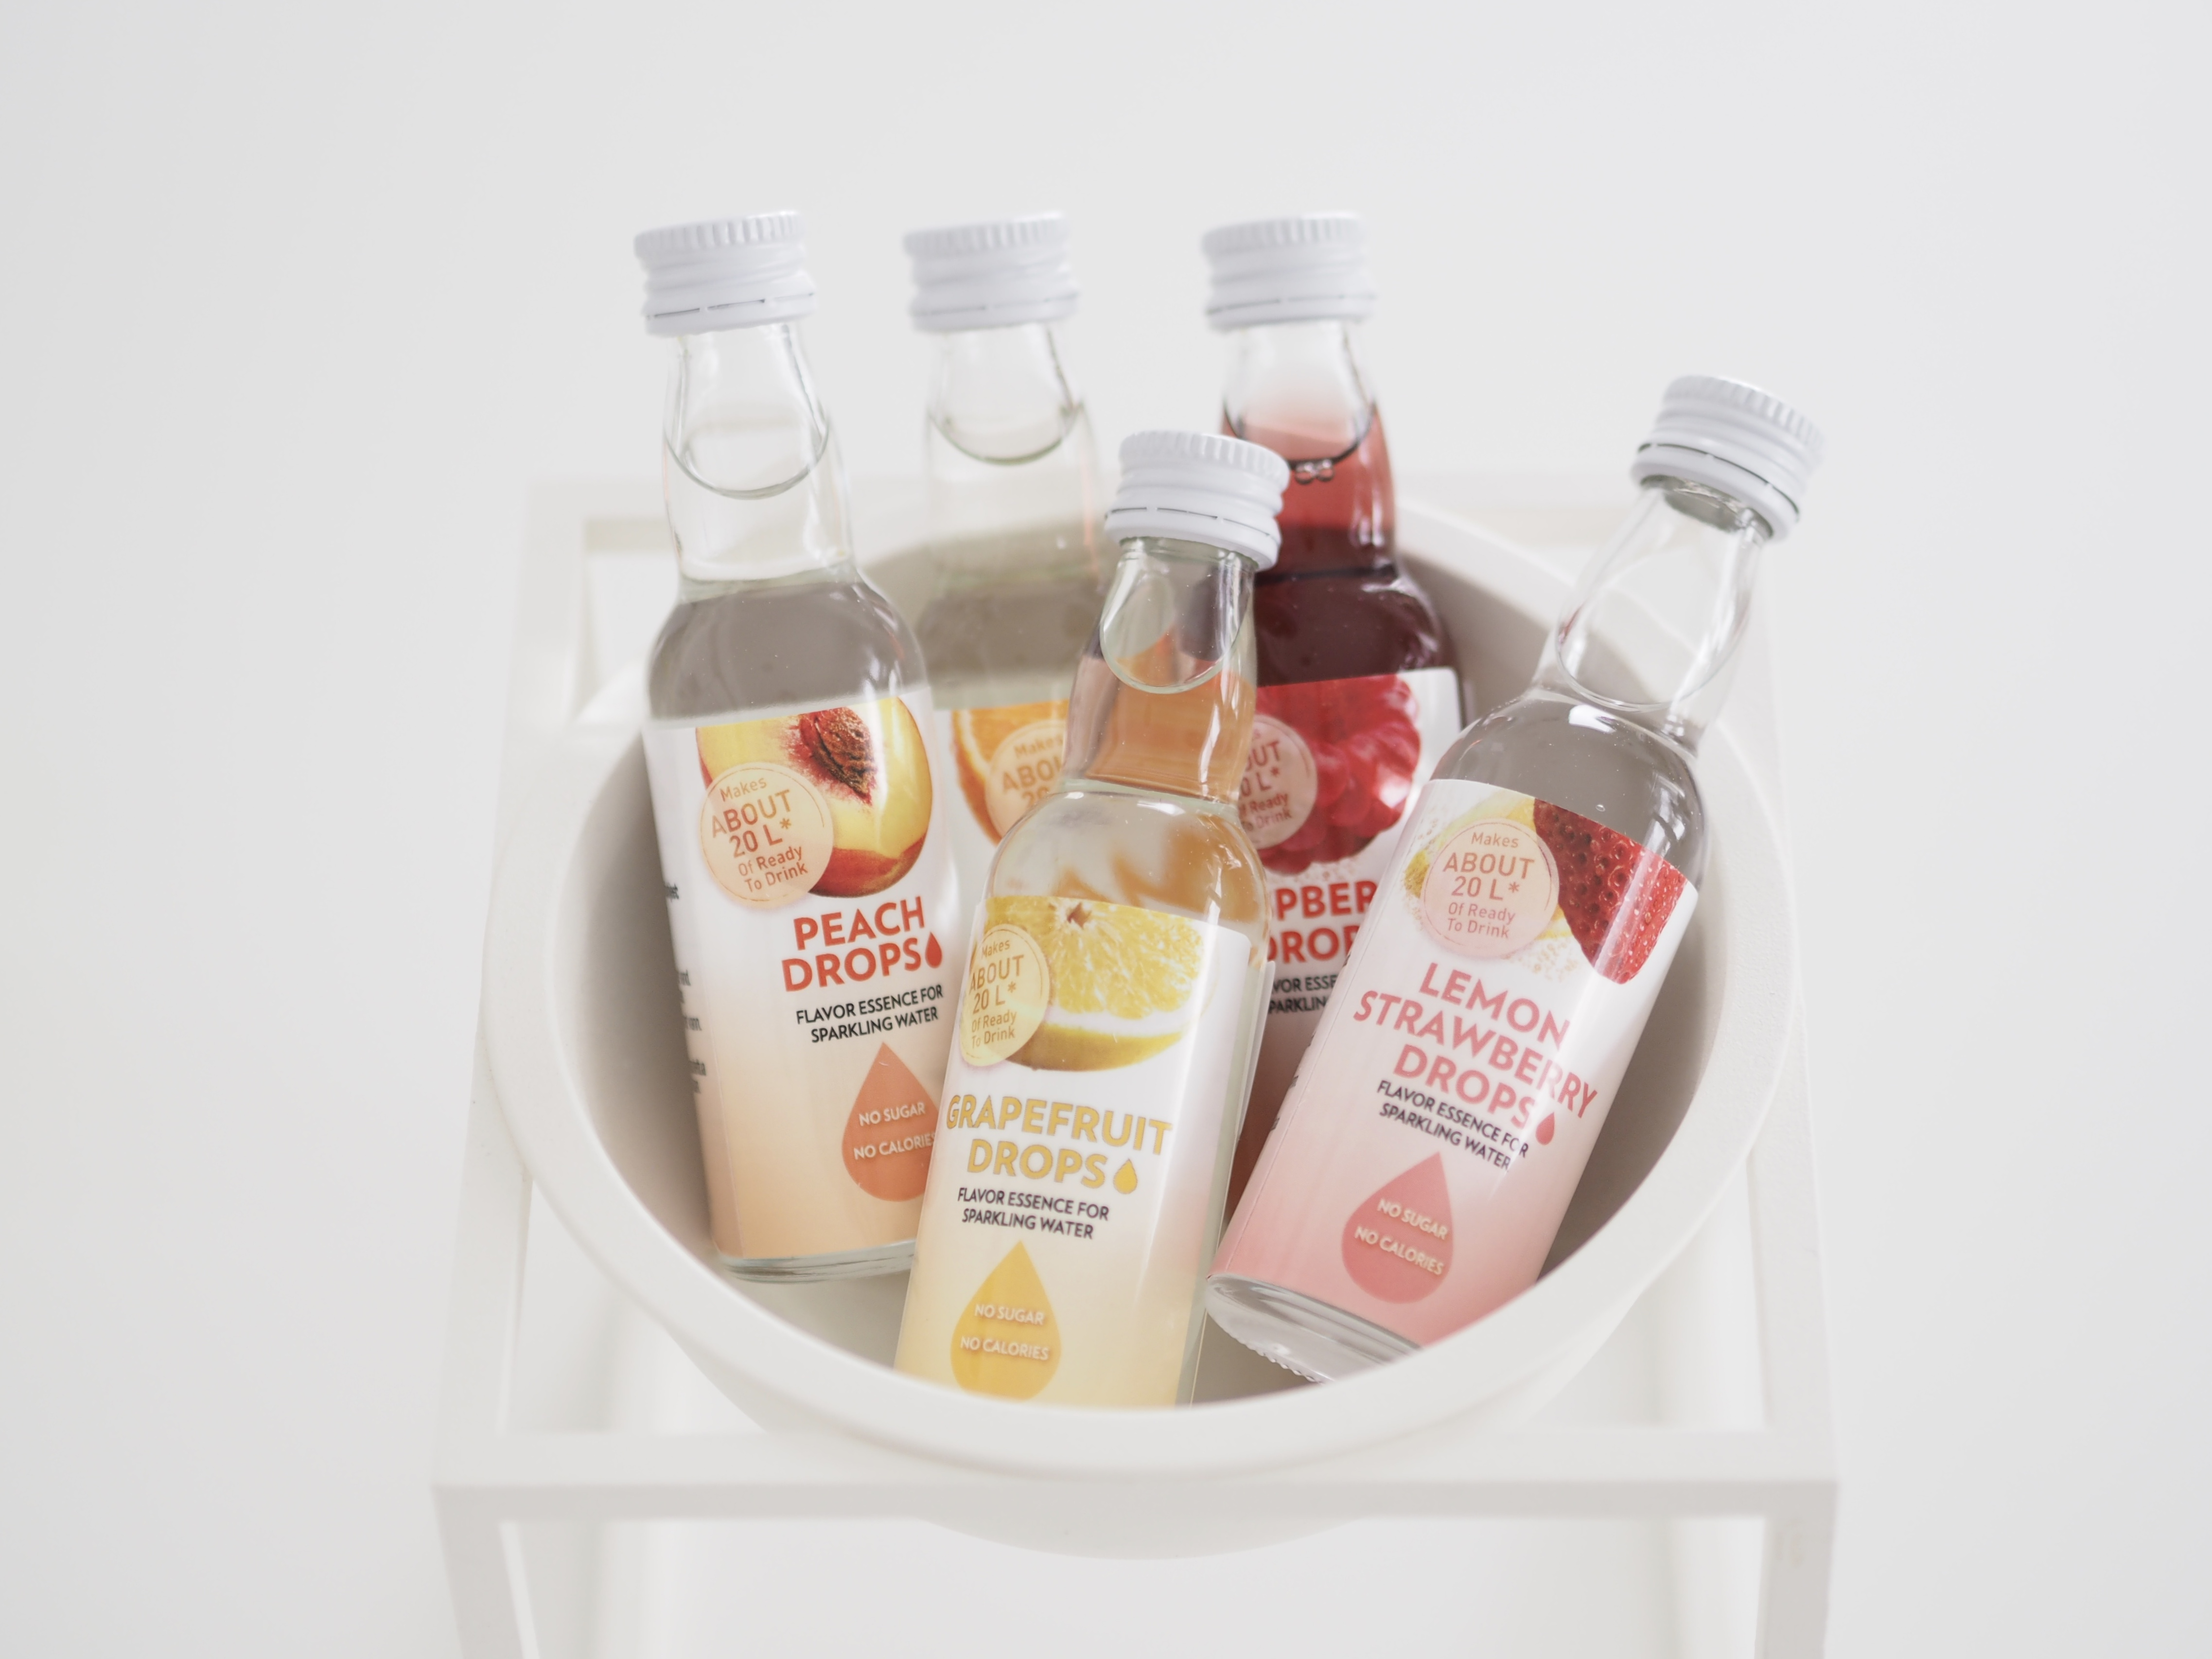 sodastream fruit drops